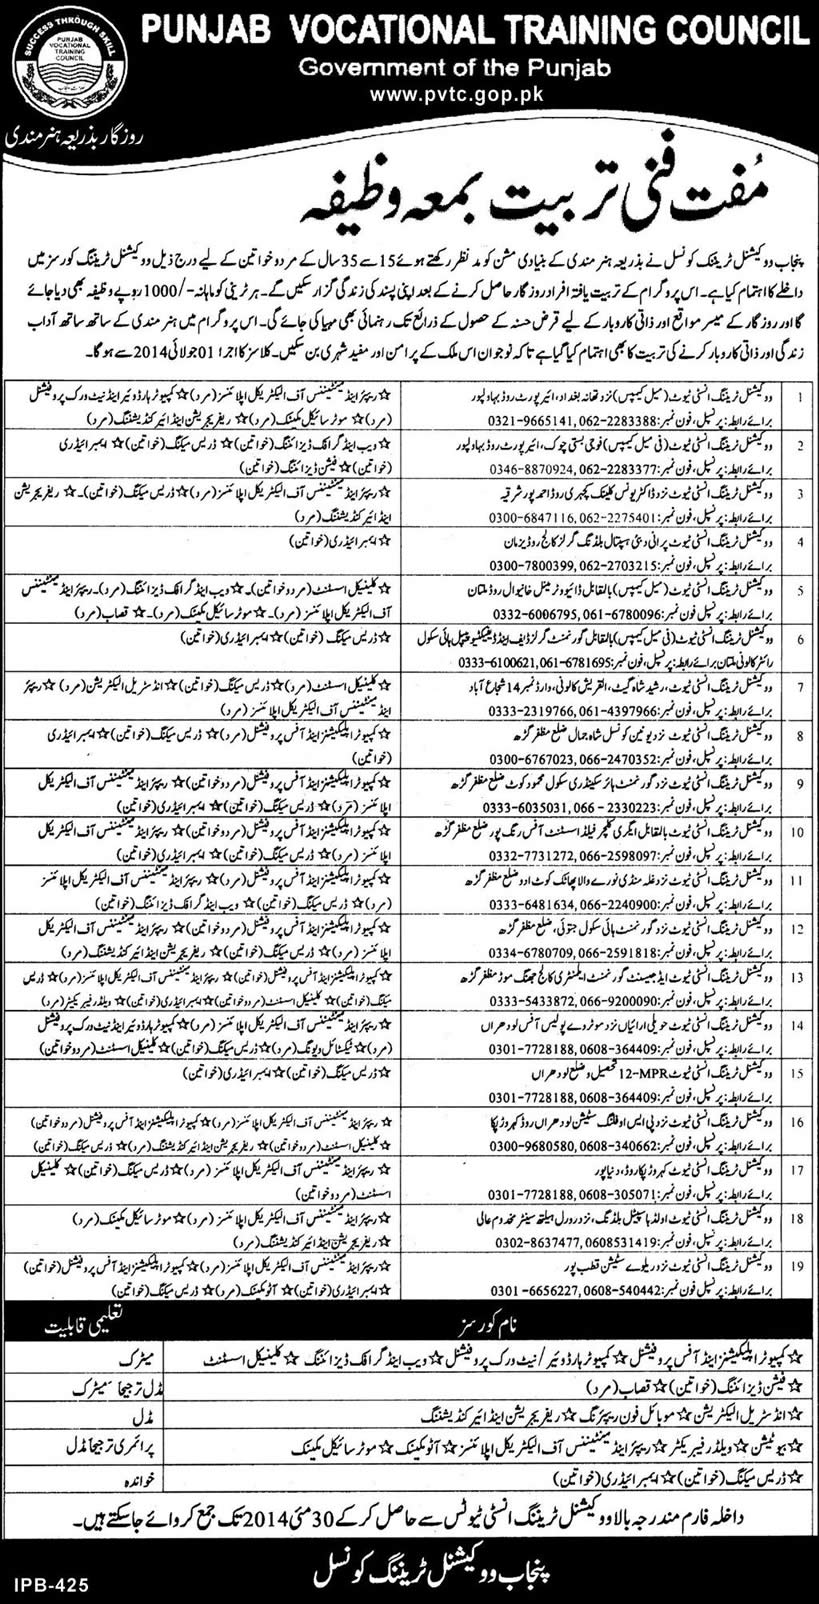 technical training in punjab stipend under technical training in punjab 2014 stipend under punjab vocational training council